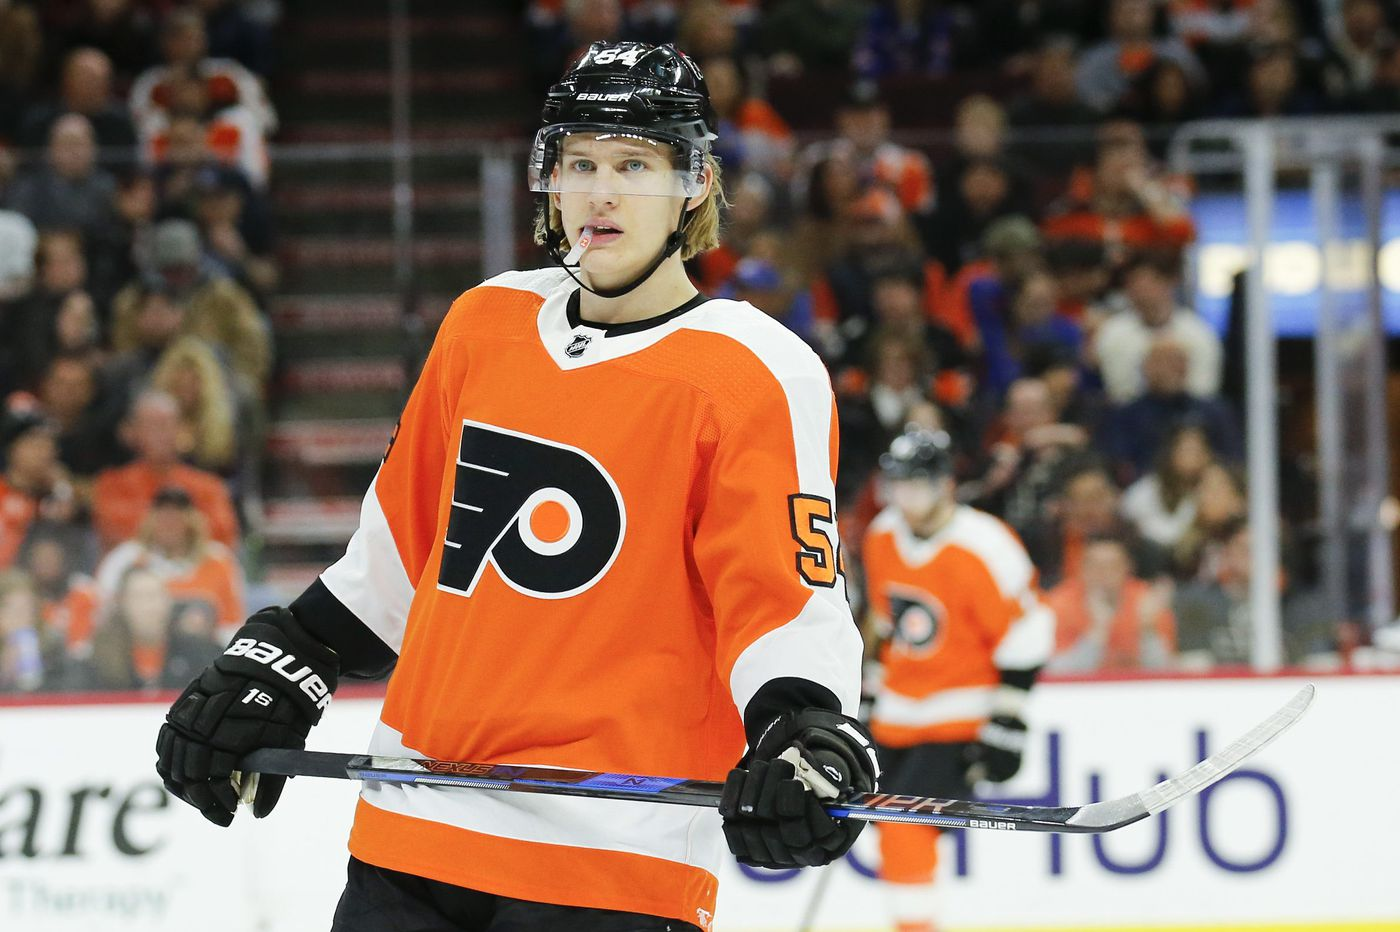 Oskar Lindblom trying to help give Flyers 3 quality lines